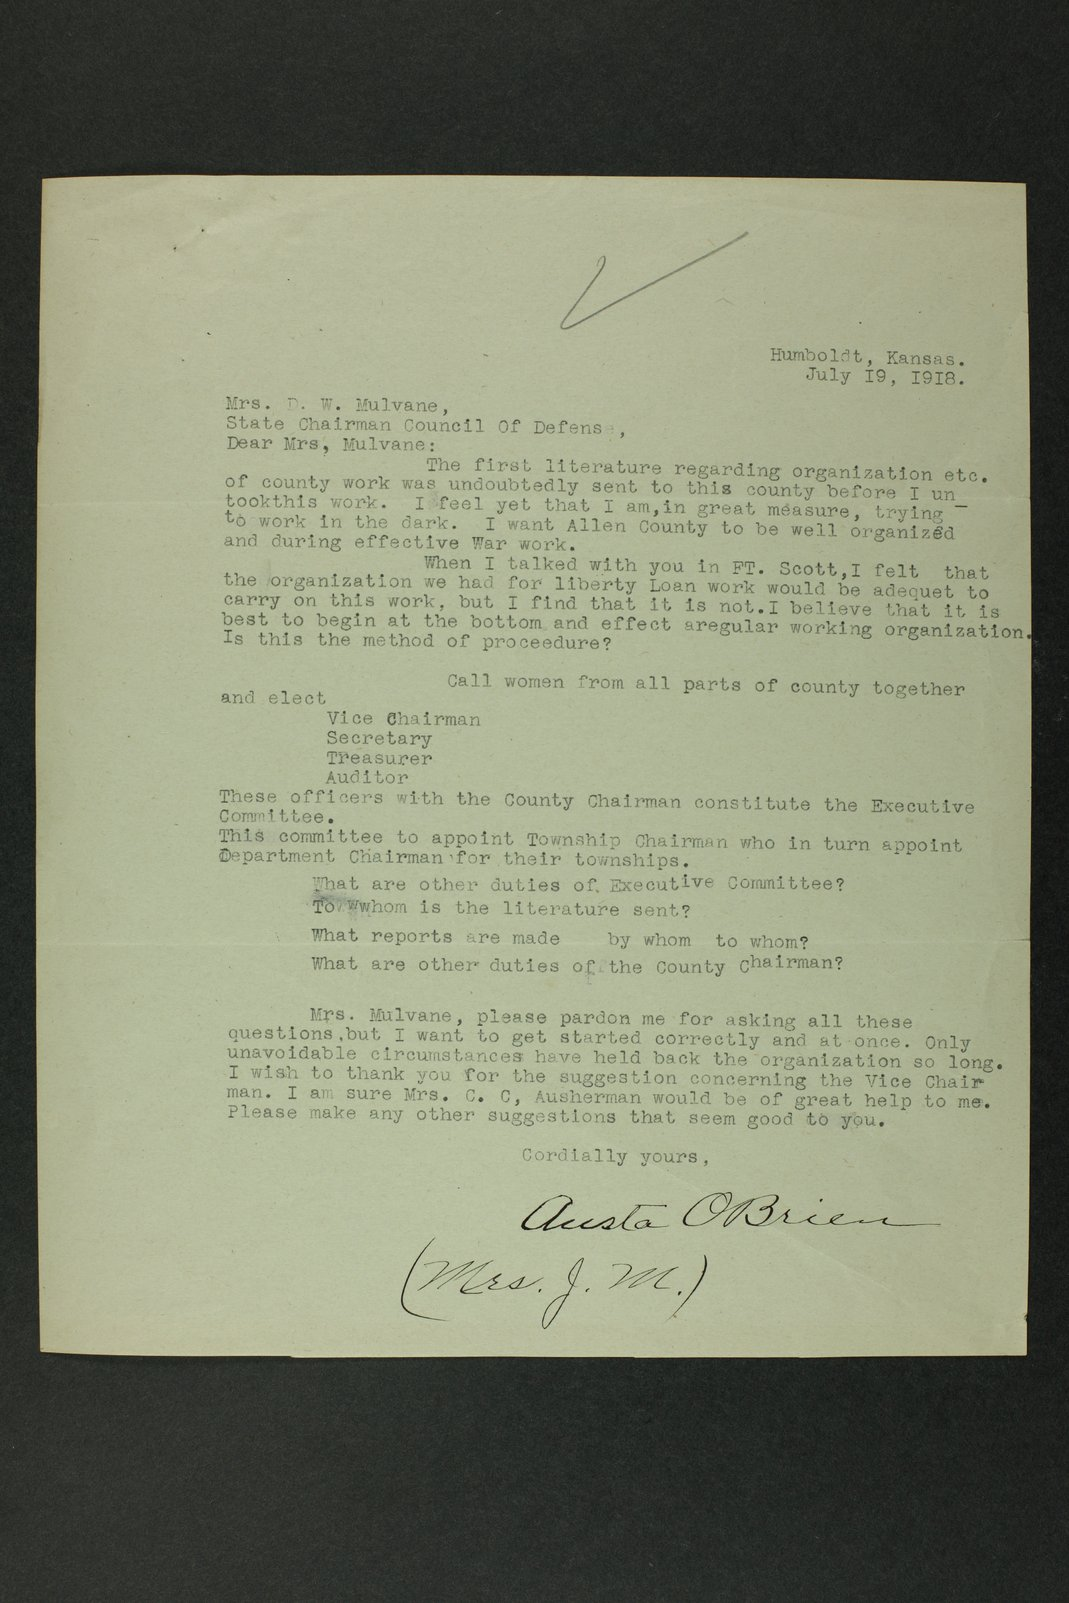 Council of National Defense Woman's Committee correspondence - 2